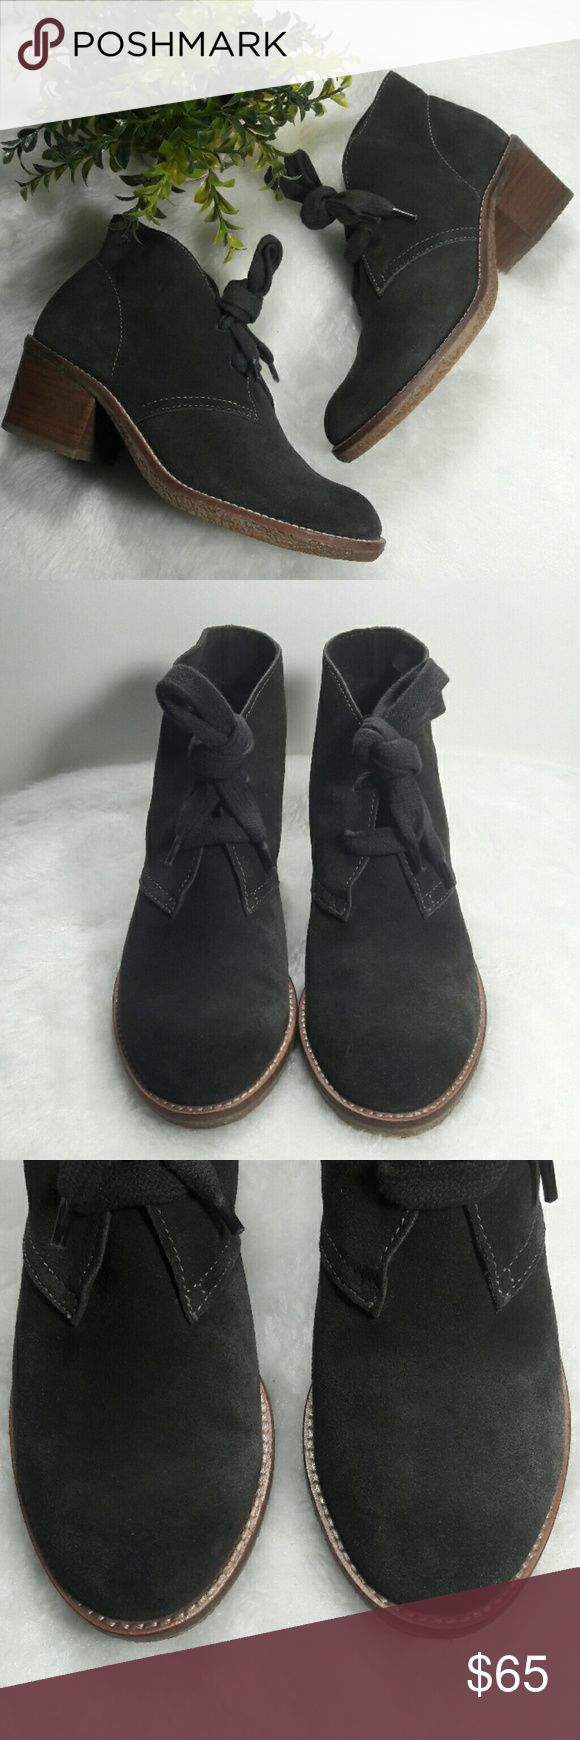 """/Dolce Vita/ Goodwyn Gray Suede Lace Up Booties So stylish and on trend! Dolce Vita Gray Suede Hush Puppy Style Lace Up Ankle Boots Sz 7 runs TTS. 2.25"""" wood heel with rubber soles. EUC minor signs of being worn. 177145Sa / Not in original box/ All Offers Welcomed / NO TRADES / Smoke and pet free home Dolce Vita Shoes Ankle Boots & Booties"""